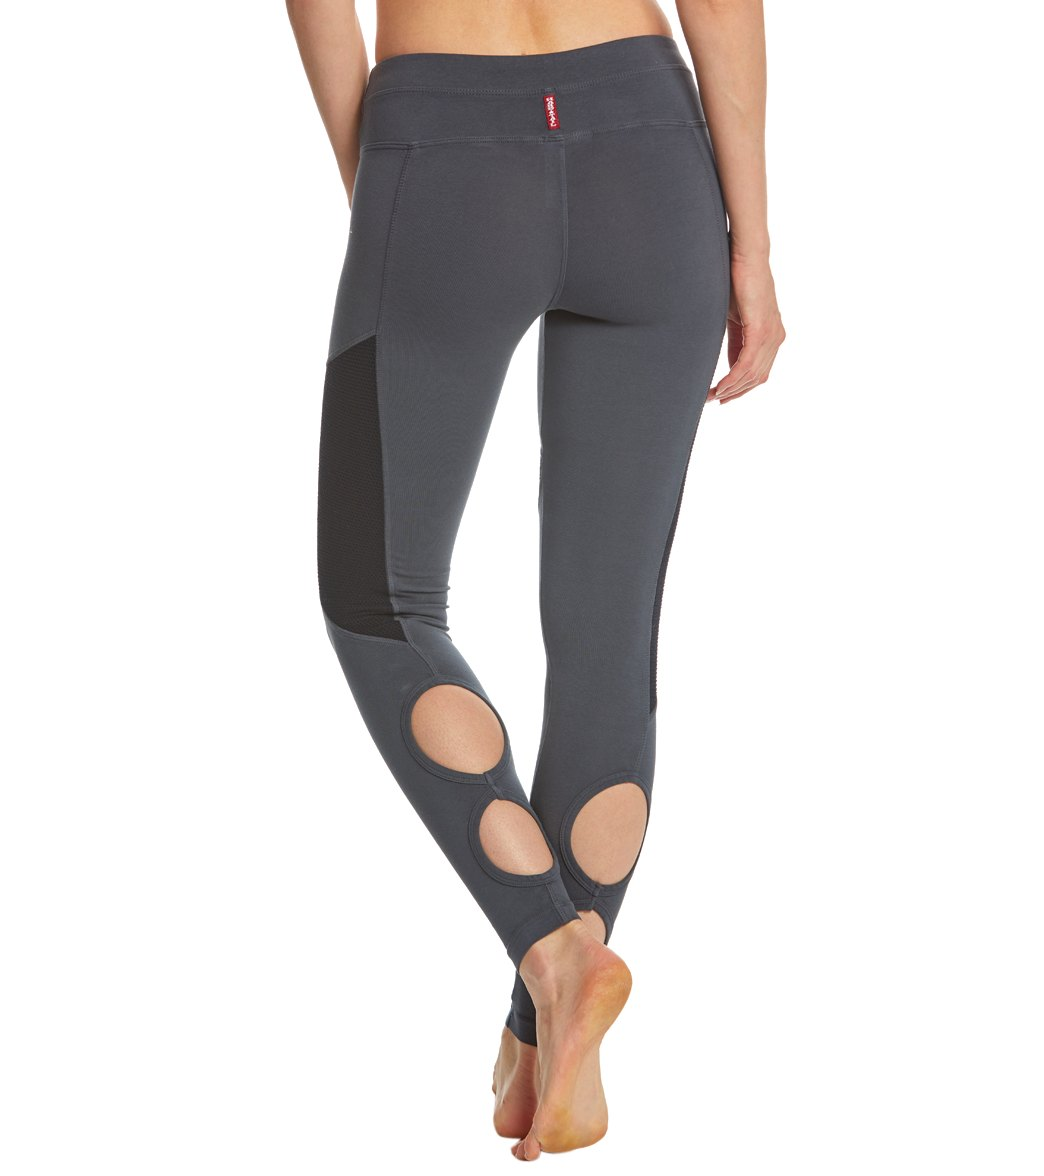 Hard Tail Low Rise Double Loop Cotton Yoga Leggings - Onyx